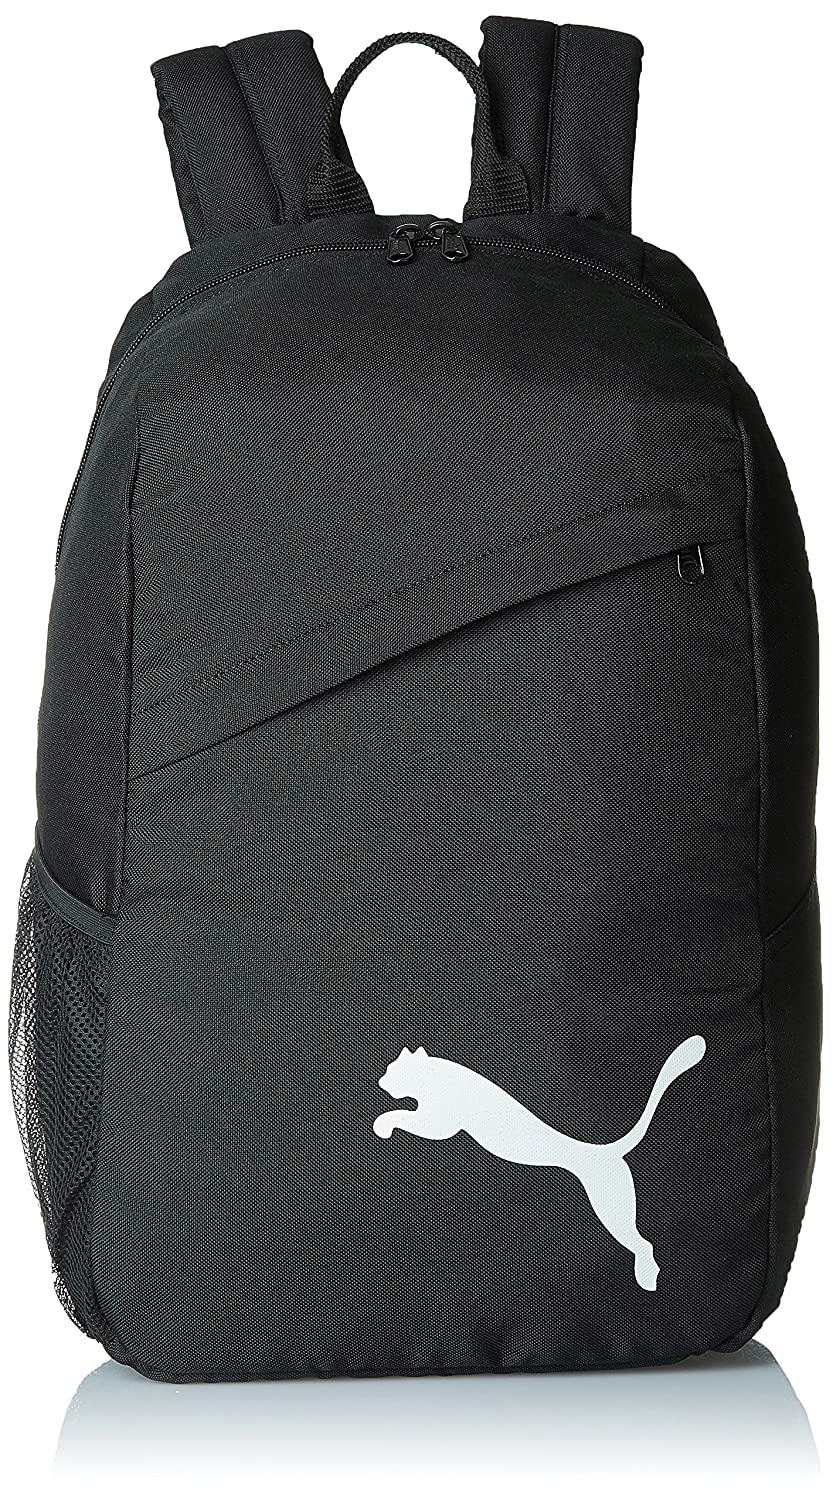 PUMA Pro Training Schoolbag/Backpack - Black/White - delicate